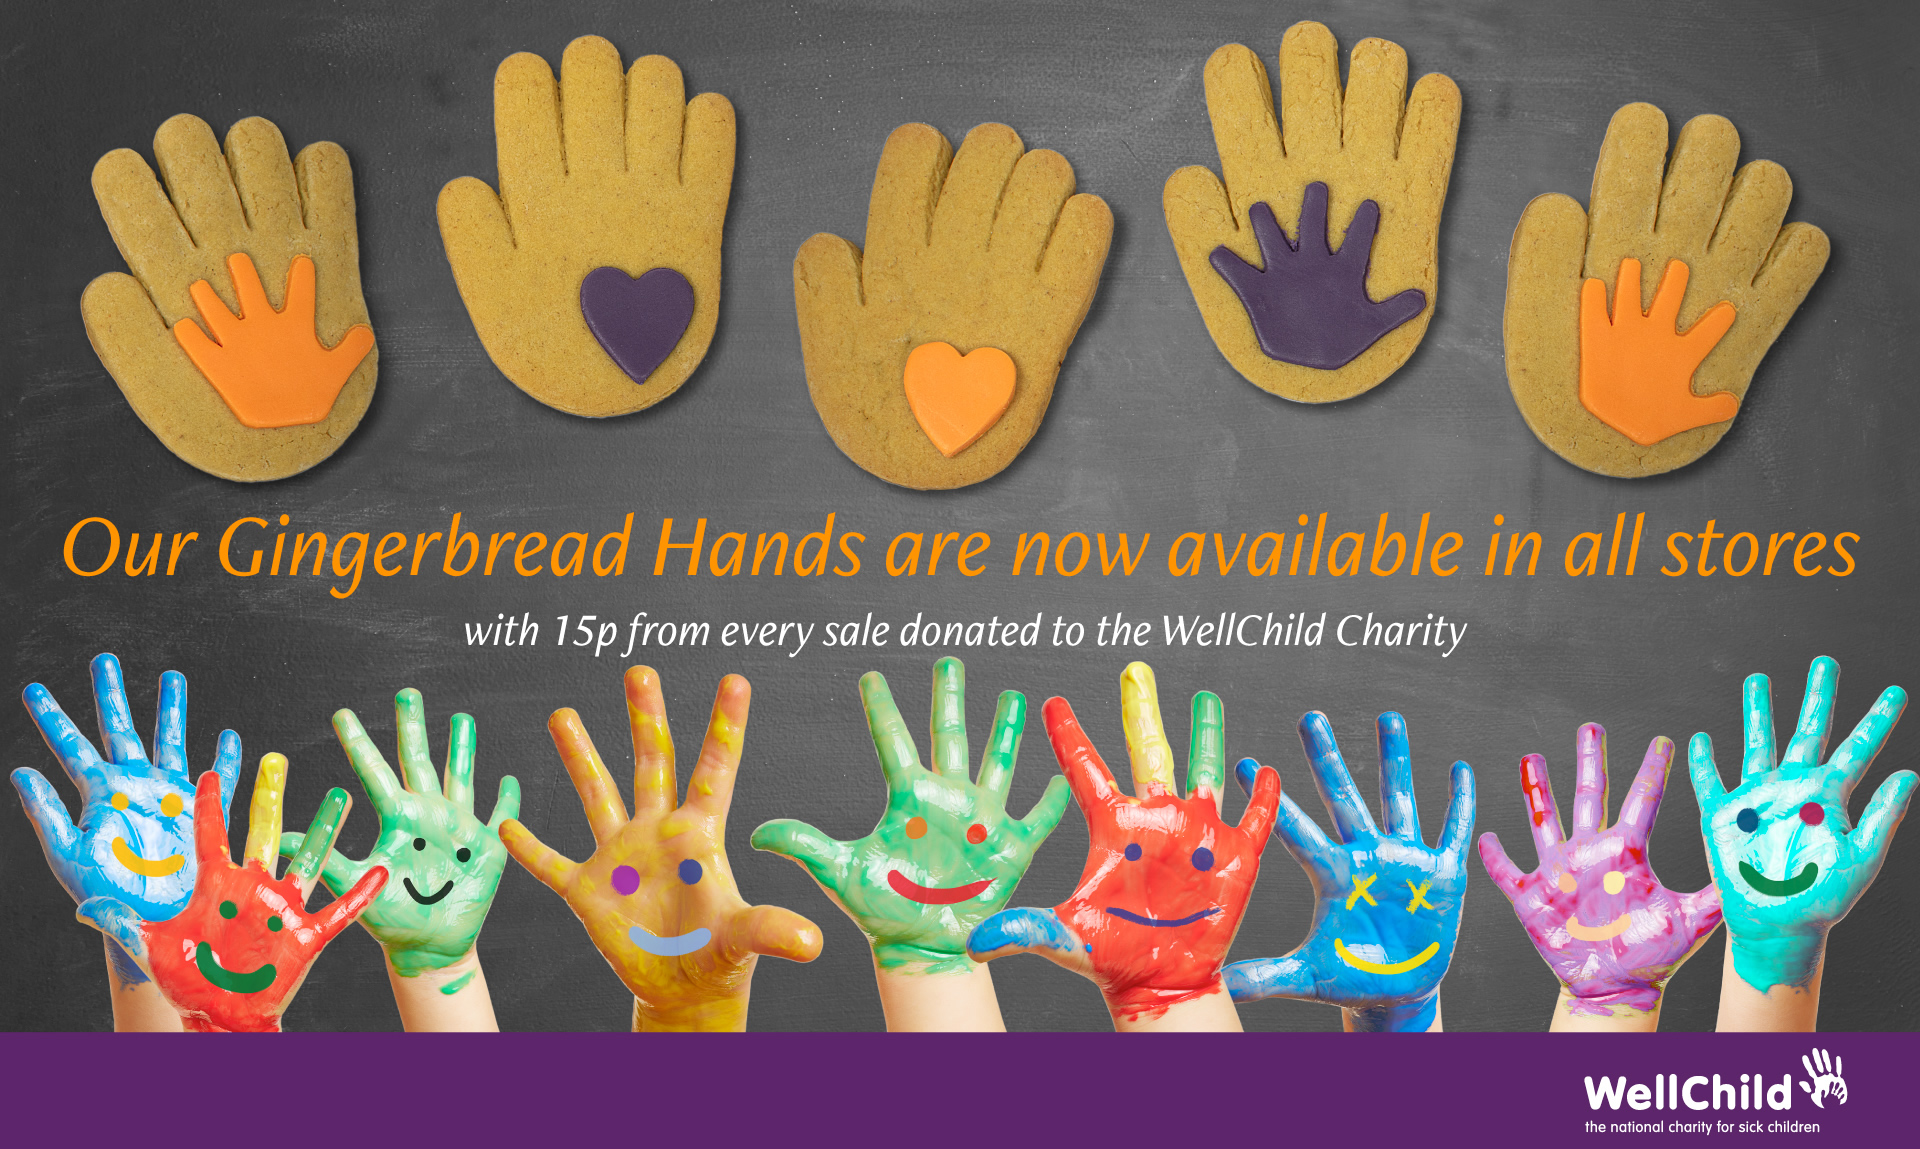 Our gingerbread hands are now available in all stores, with 15p from every sale donated to the WellChild Charity